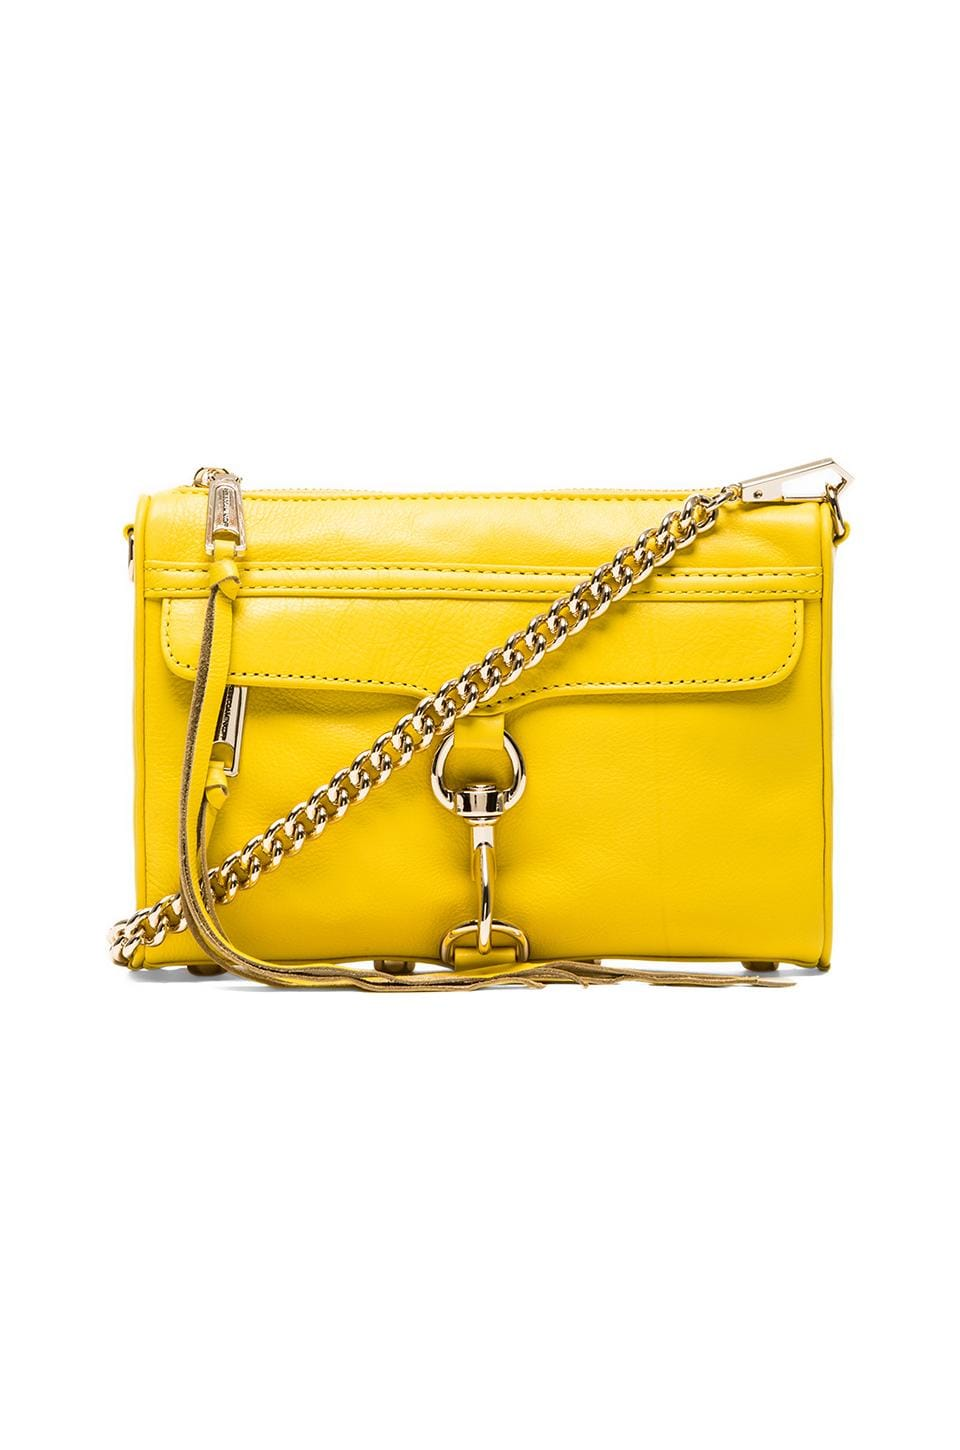 Rebecca Minkoff Mini MAC in Marigold